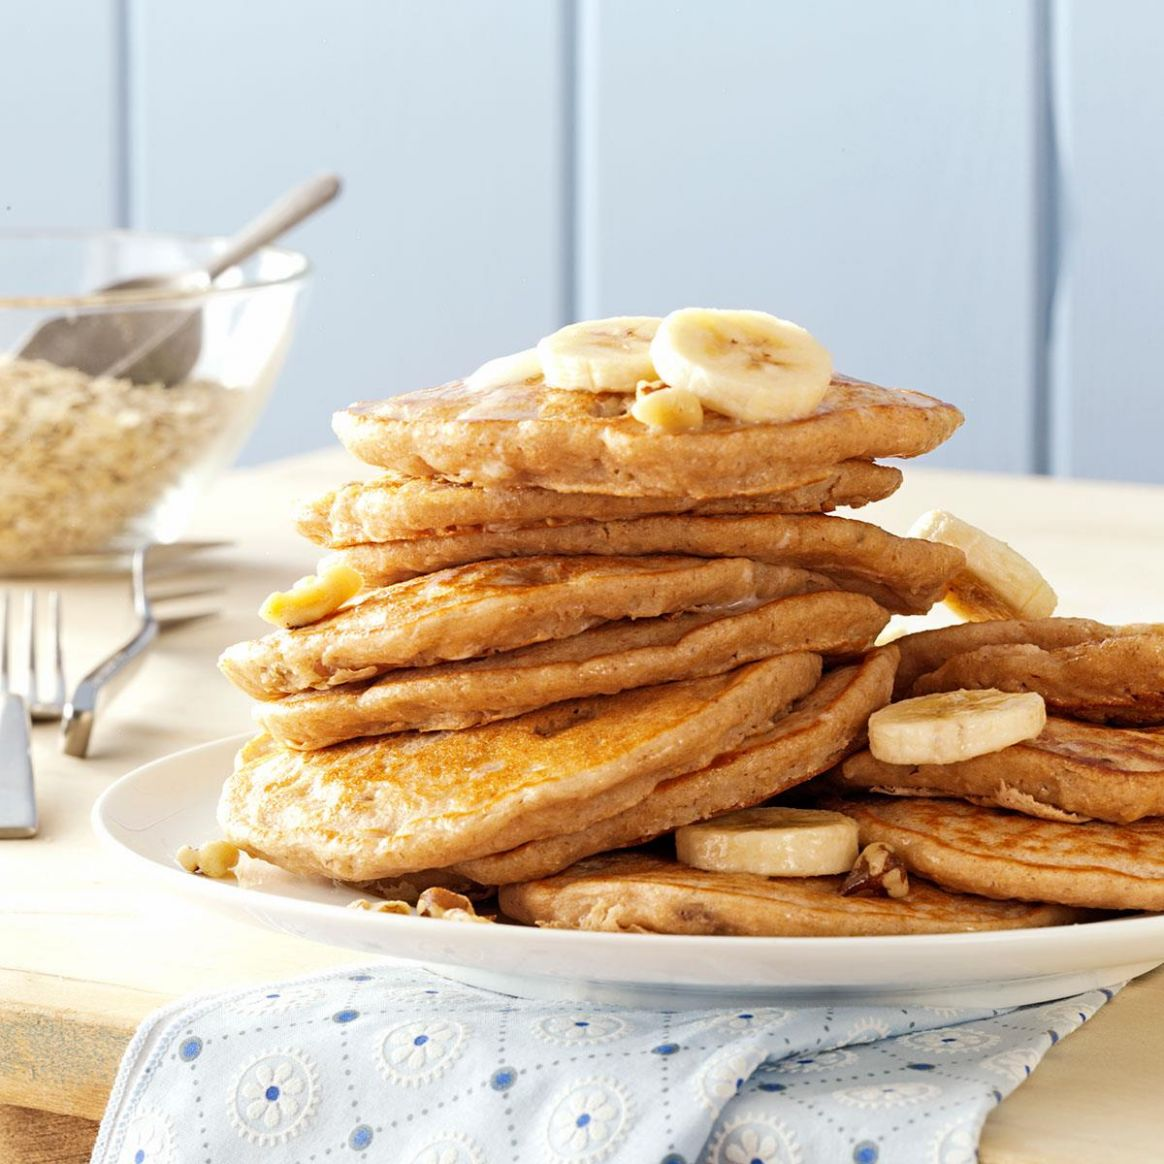 Banana Oatmeal Pancakes - Simple Recipes Using Bananas